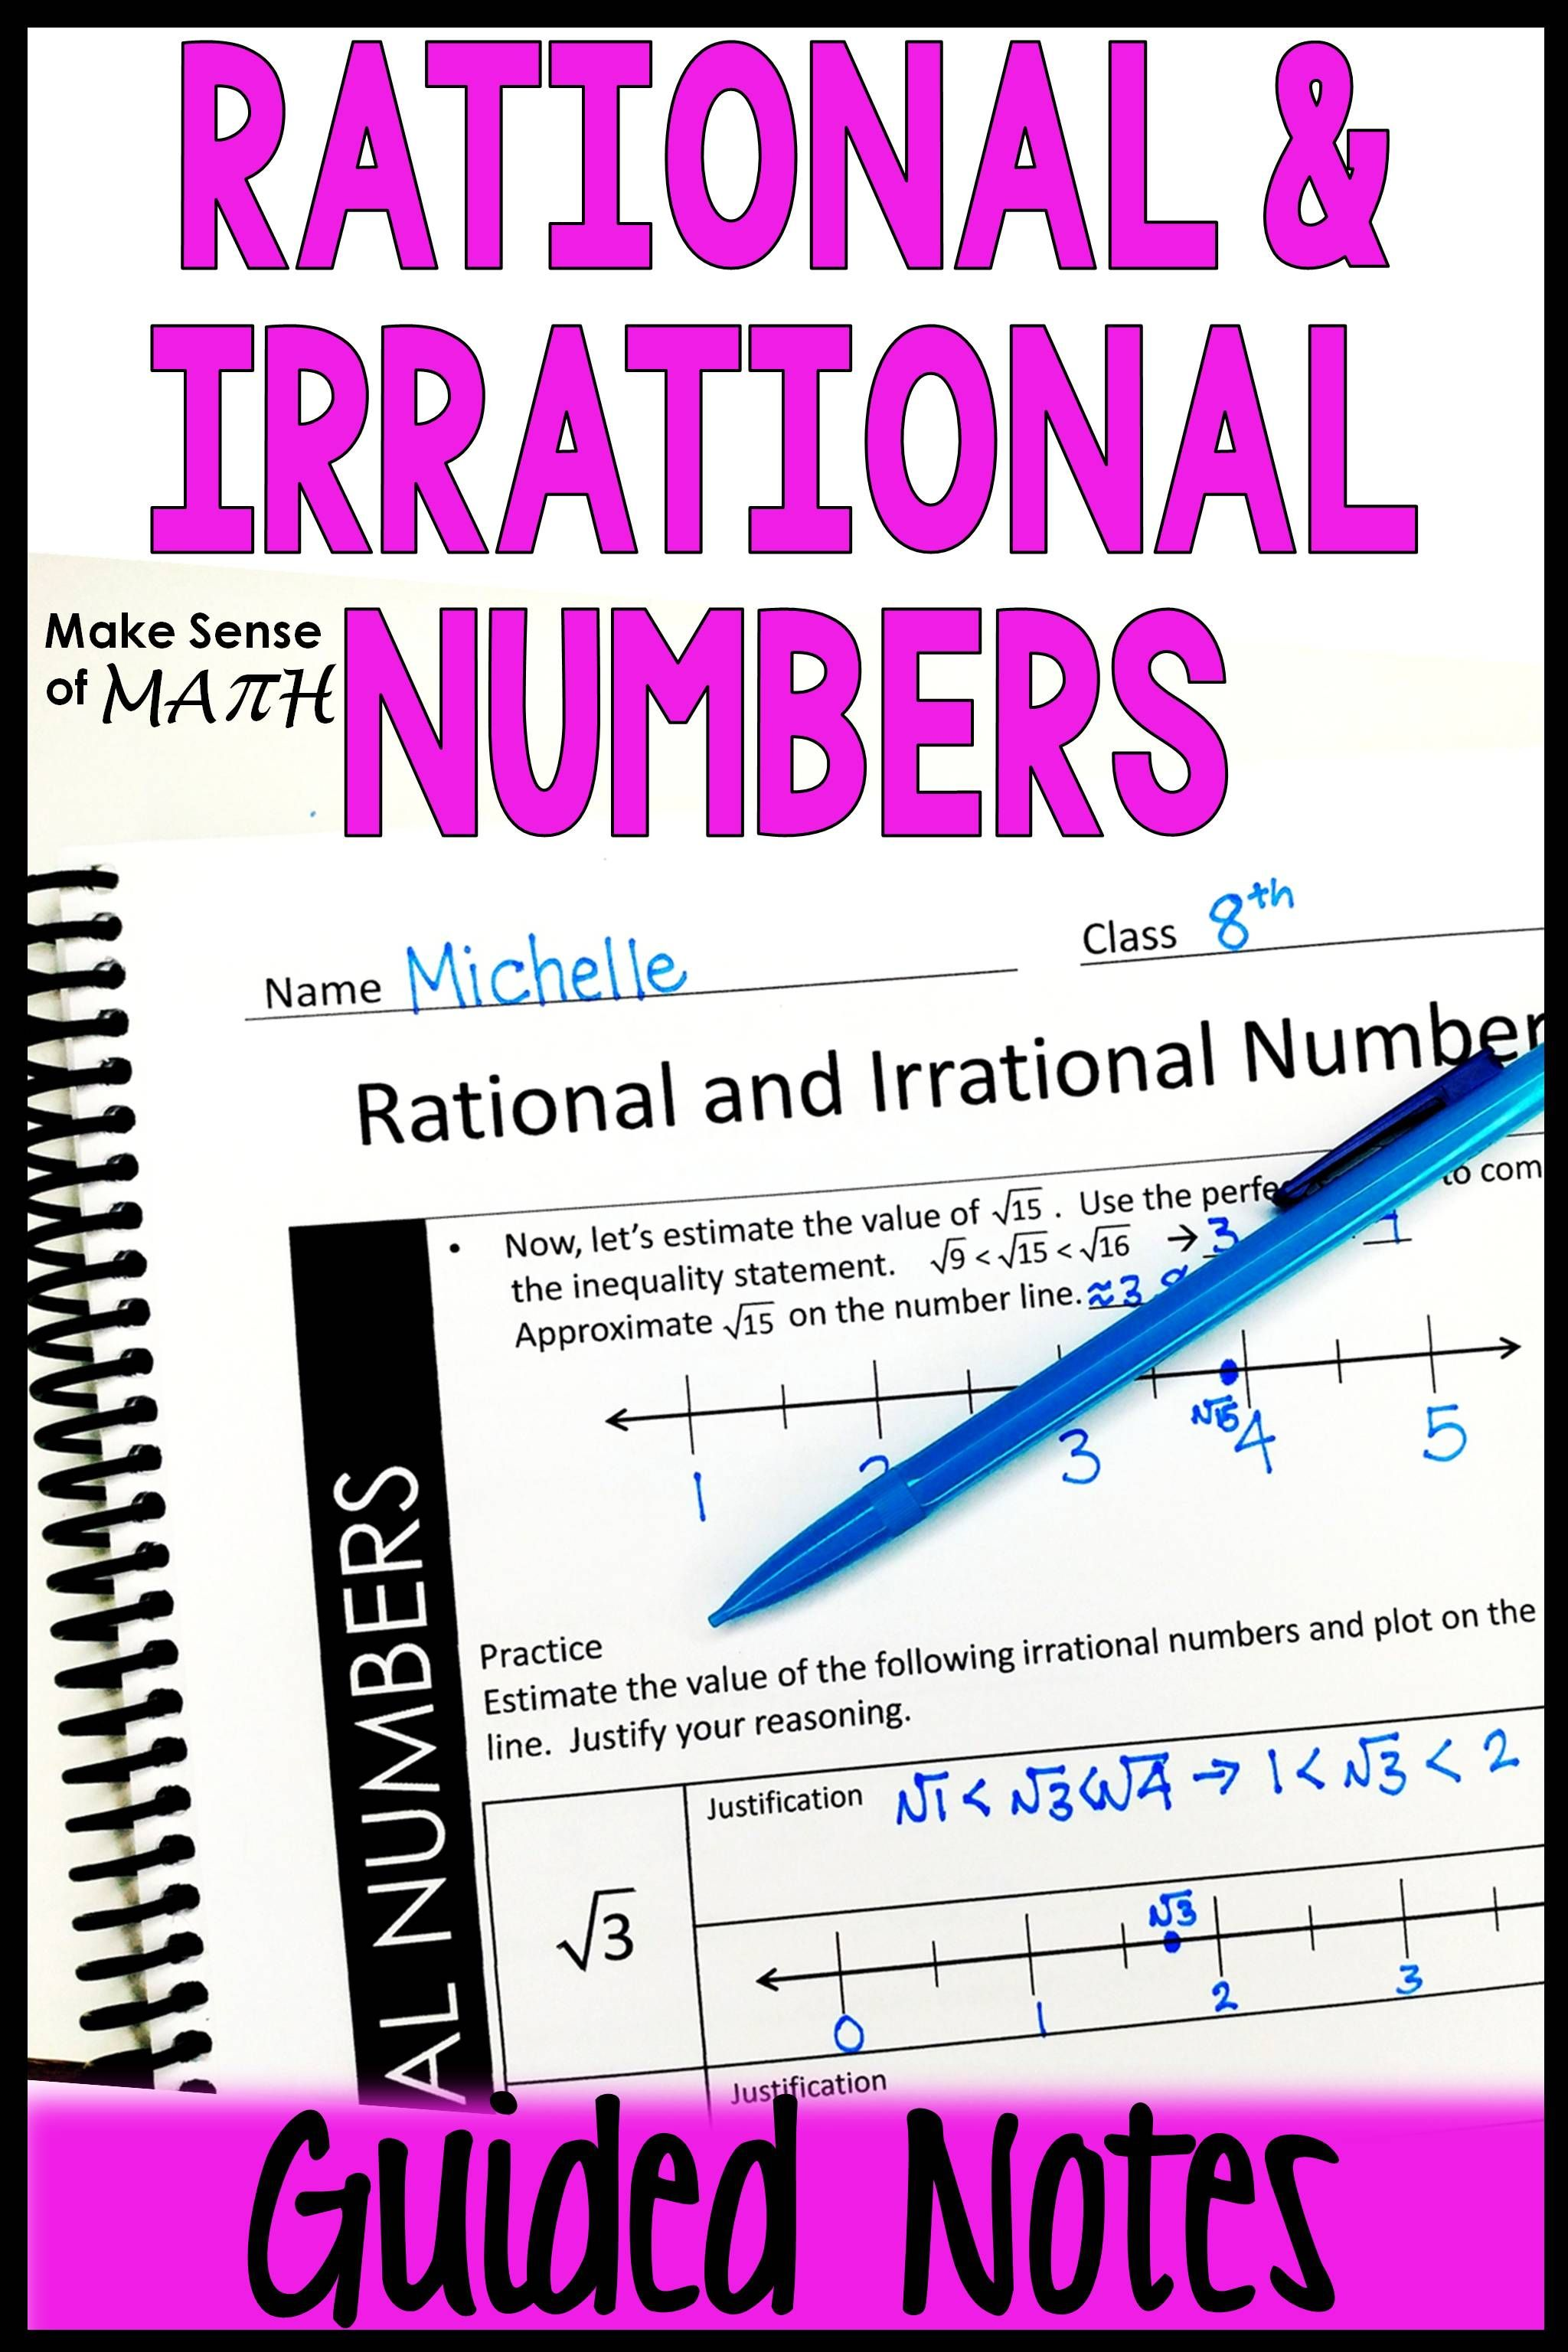 medium resolution of Rational and Irrational Numbers Notes   Irrational numbers